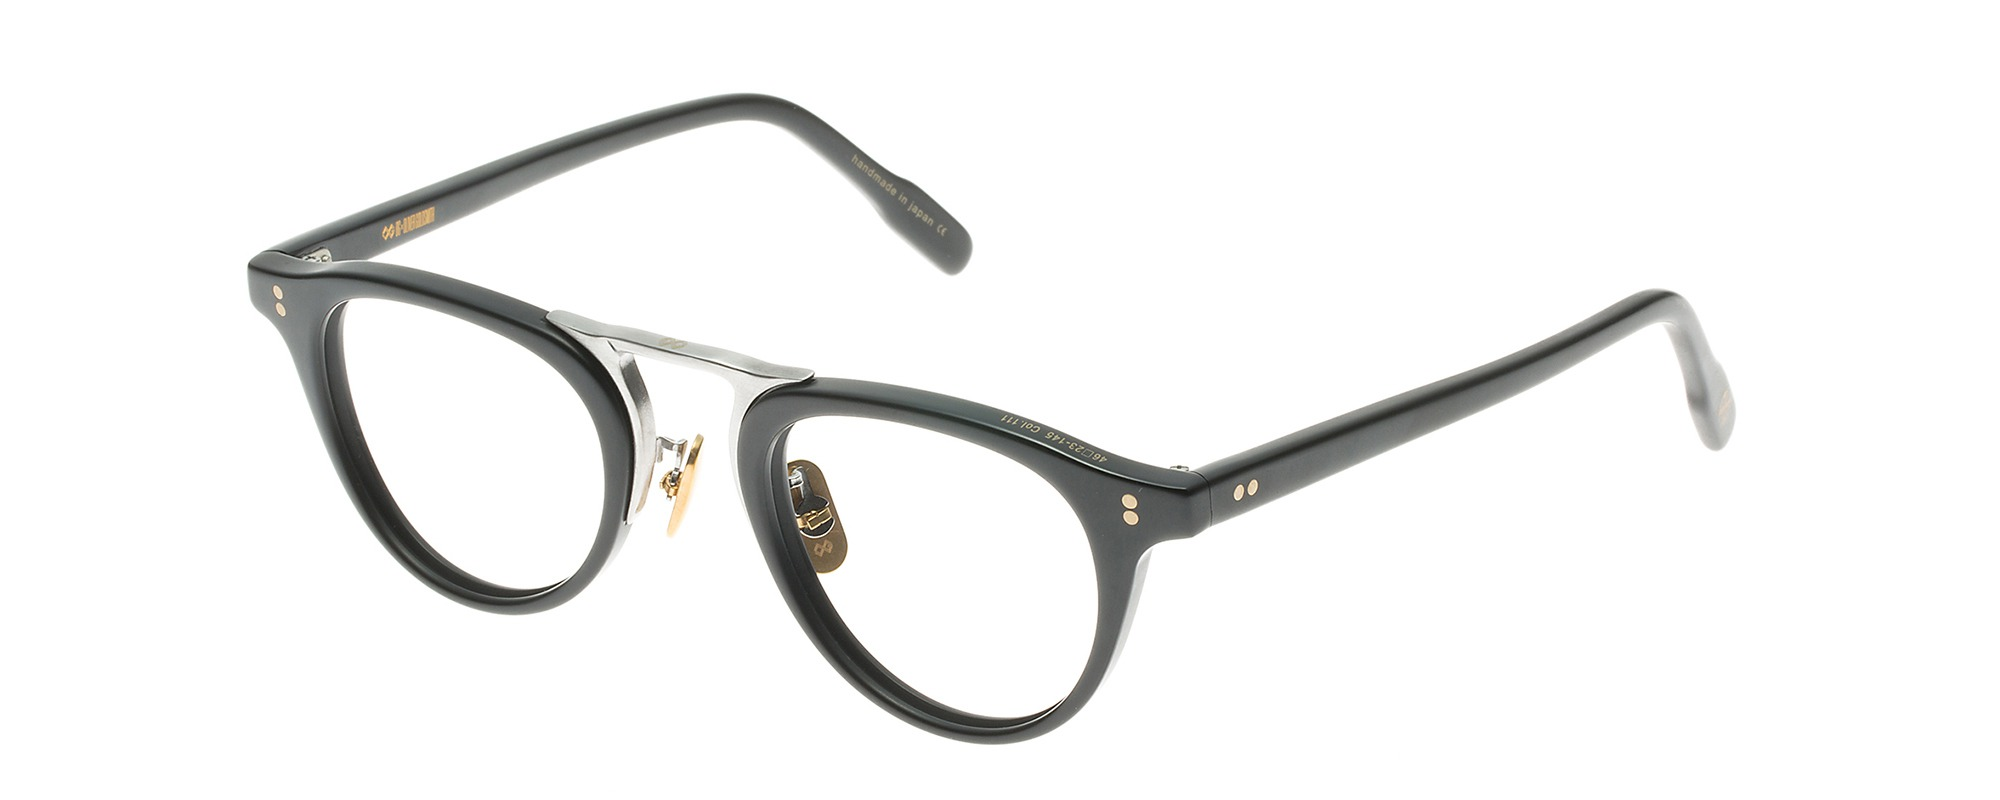 OG × OLIVER GOLDSMITH SEEKER46 シーカー